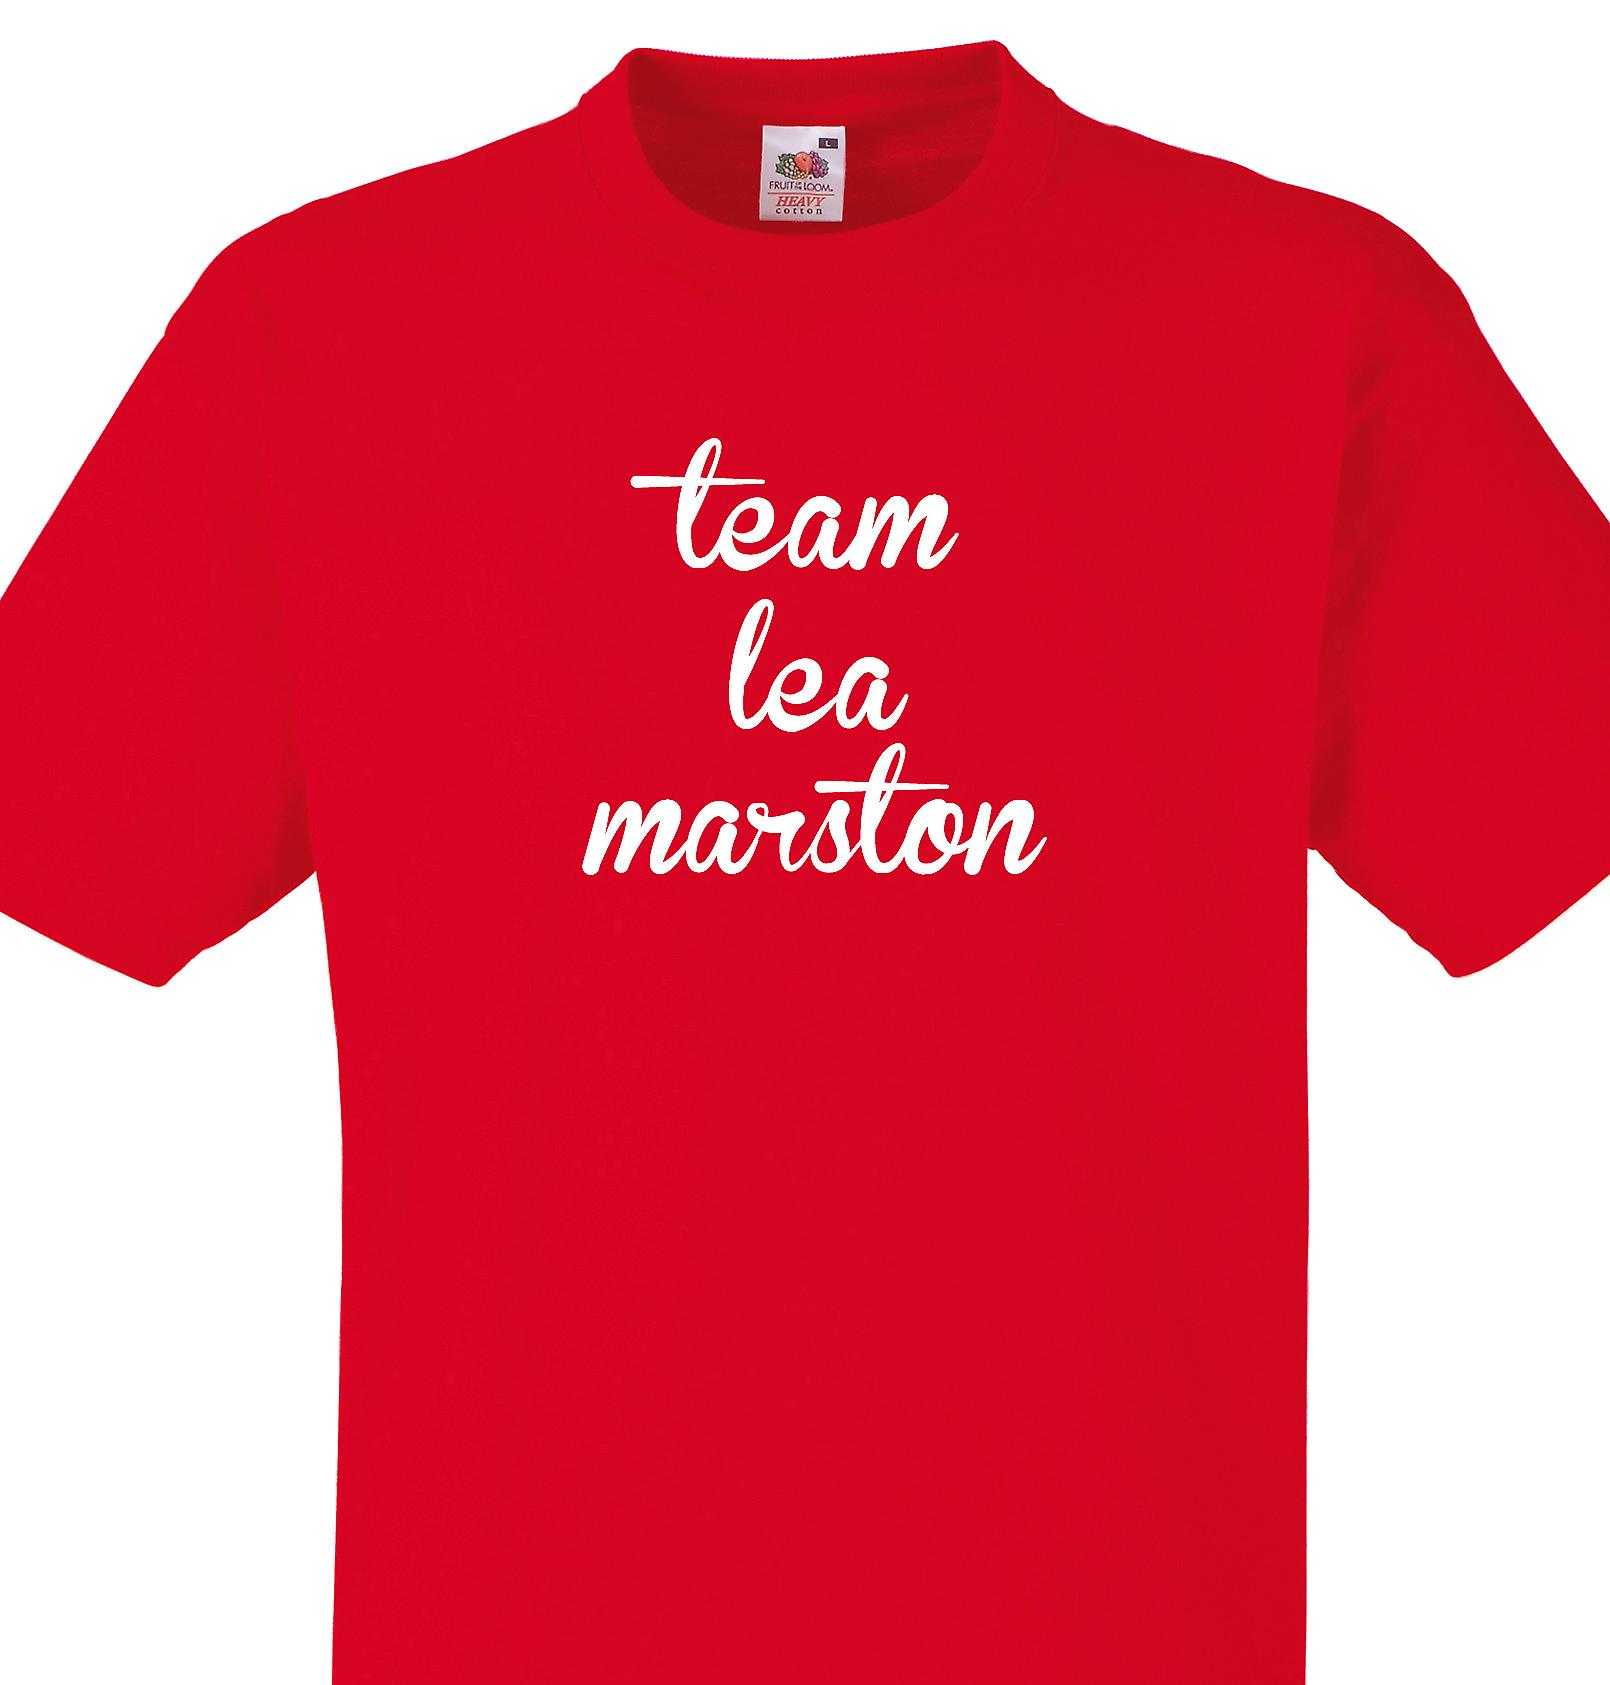 Team Lea marston Red T shirt